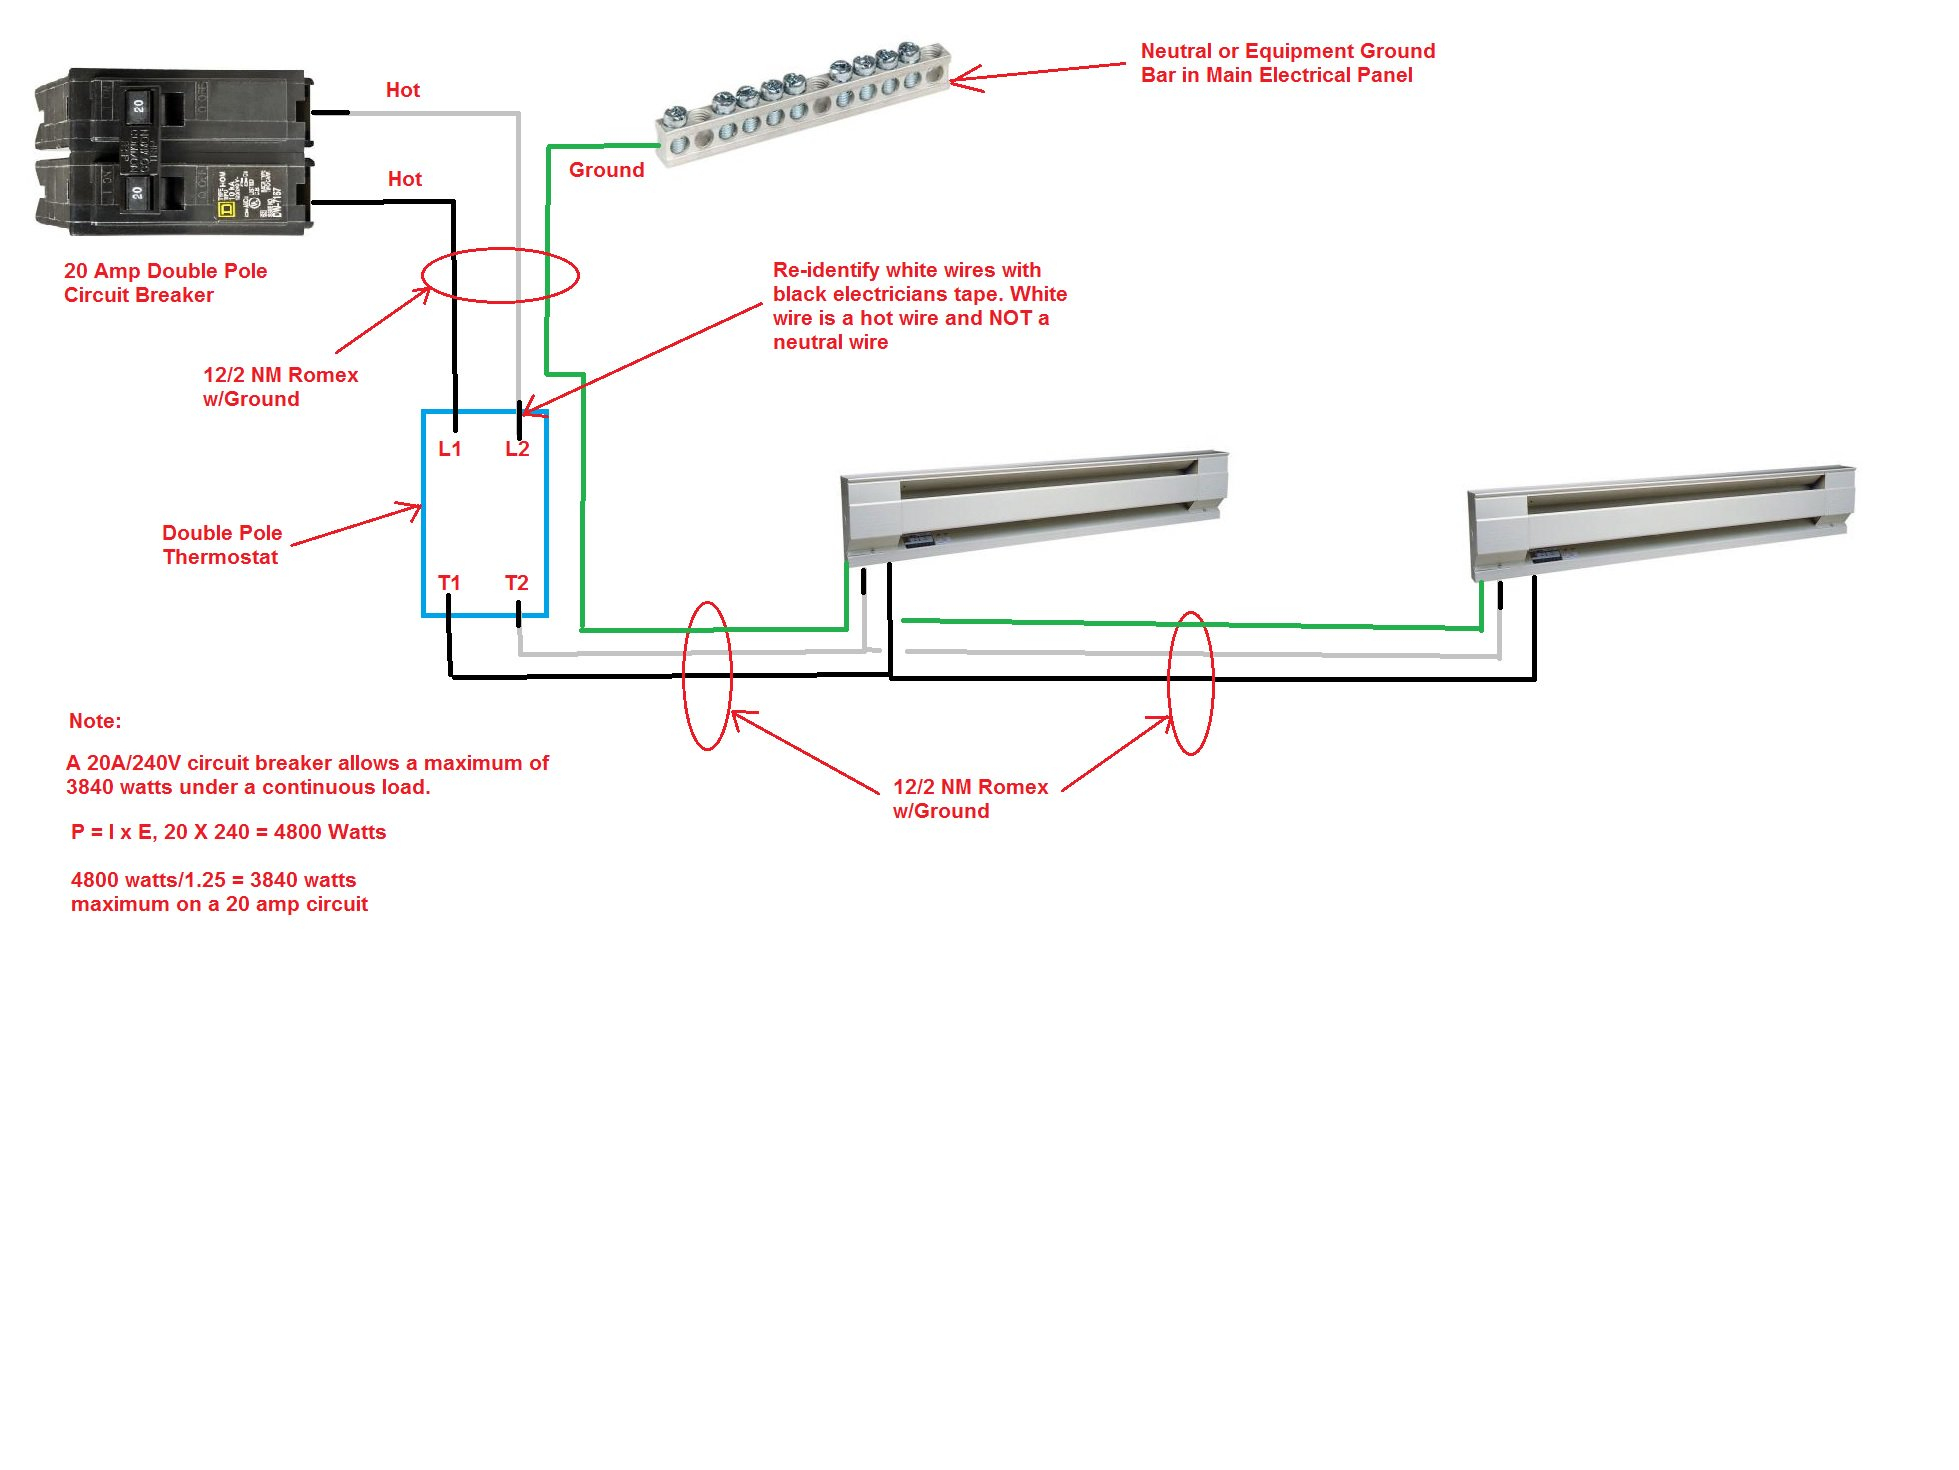 220 Baseboard Heater Wiring Diagram | Wiring Diagram - Baseboard Heater Wiring Diagram